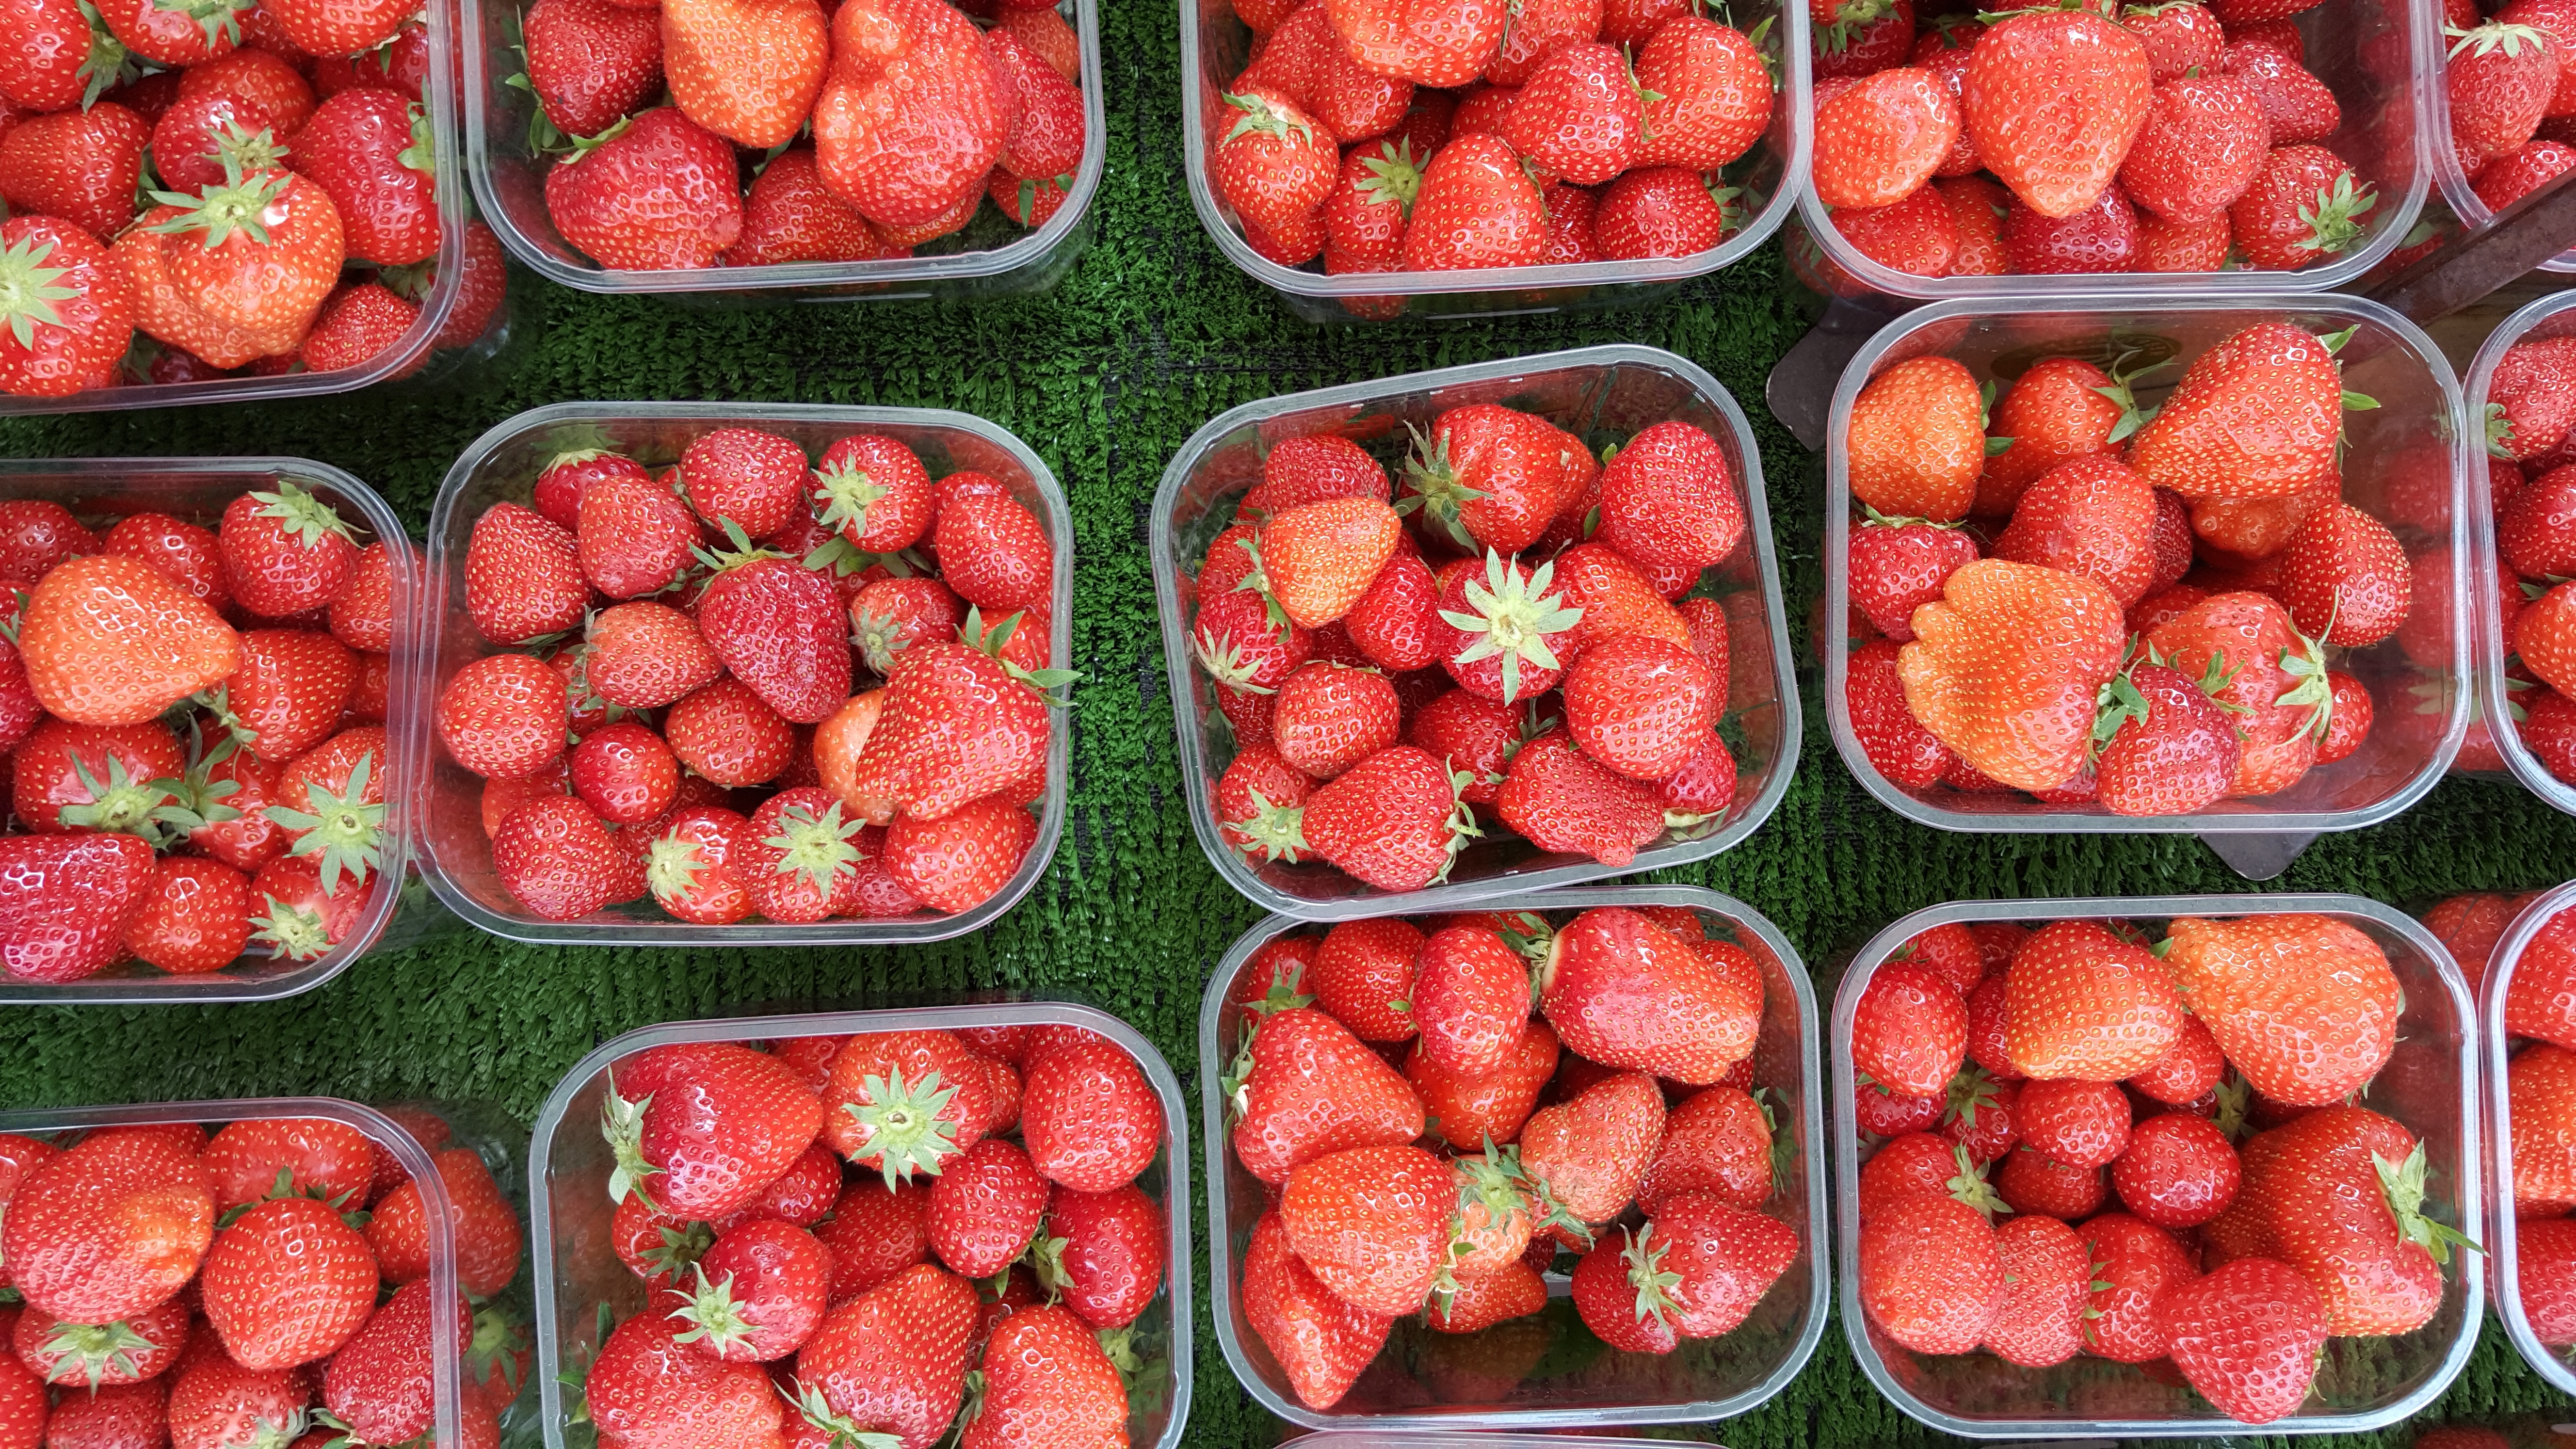 strawberries in clear pack lot